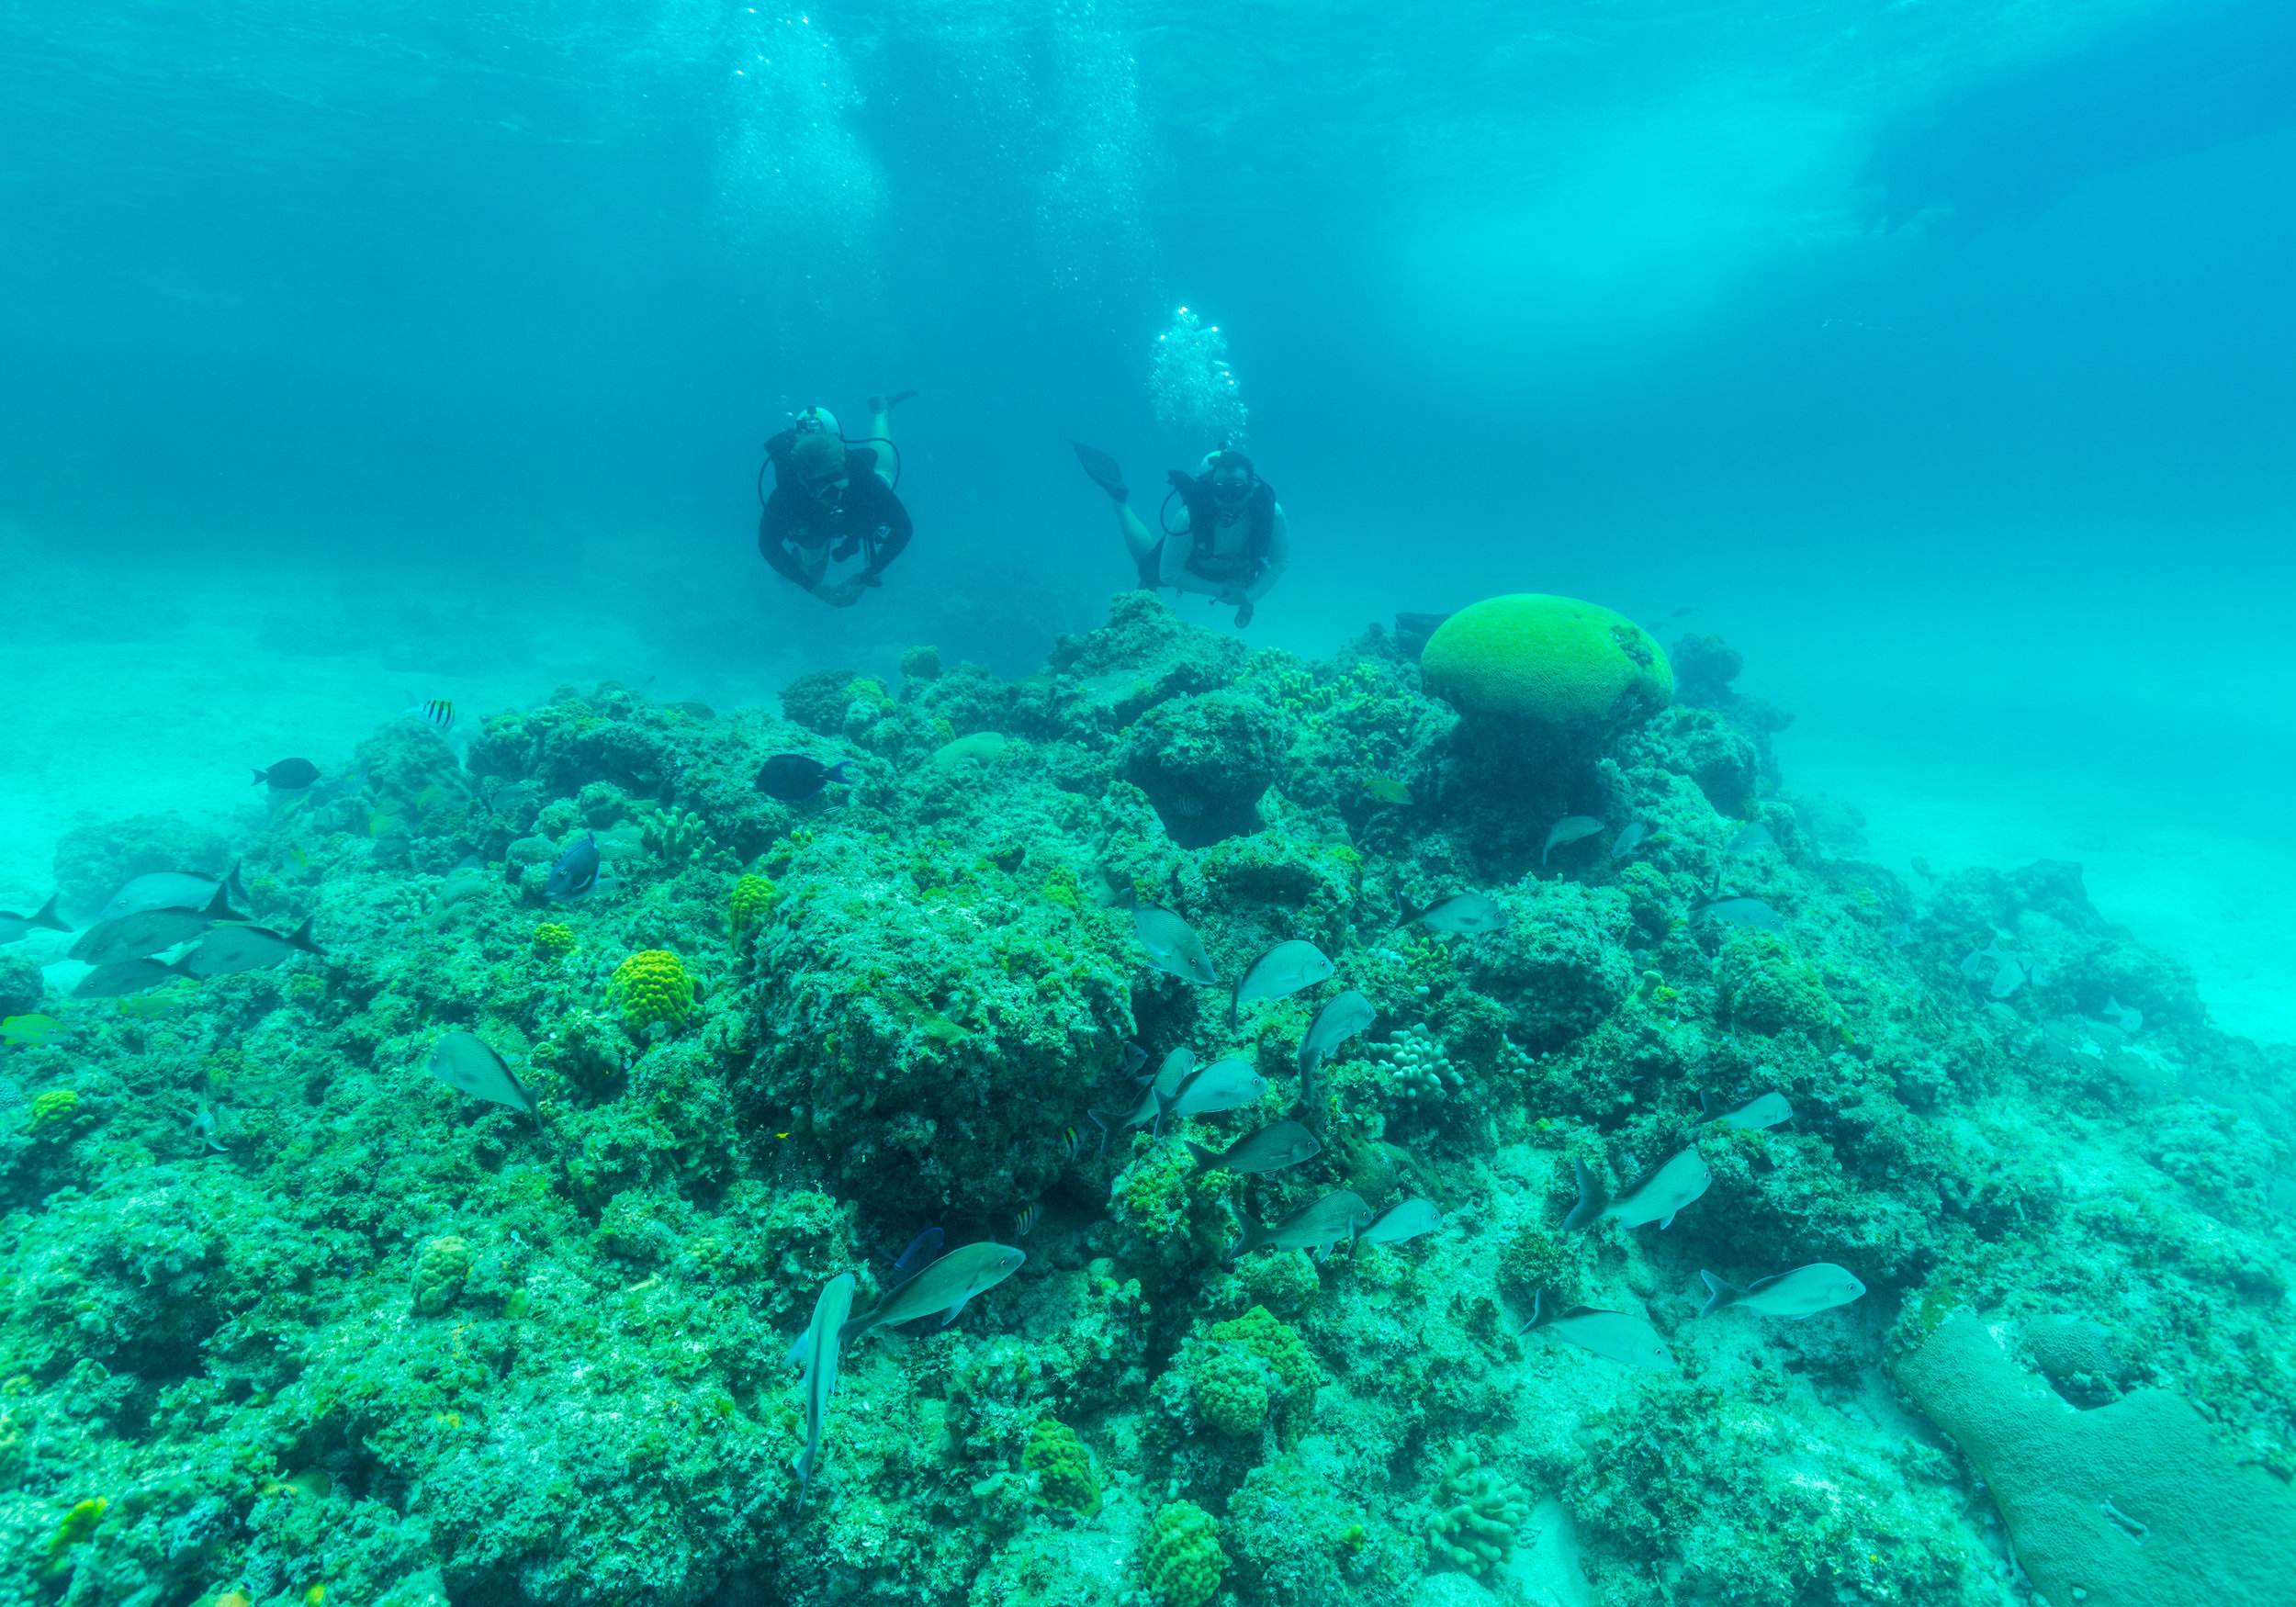 Discover coral reefs and breathtaking underwater life